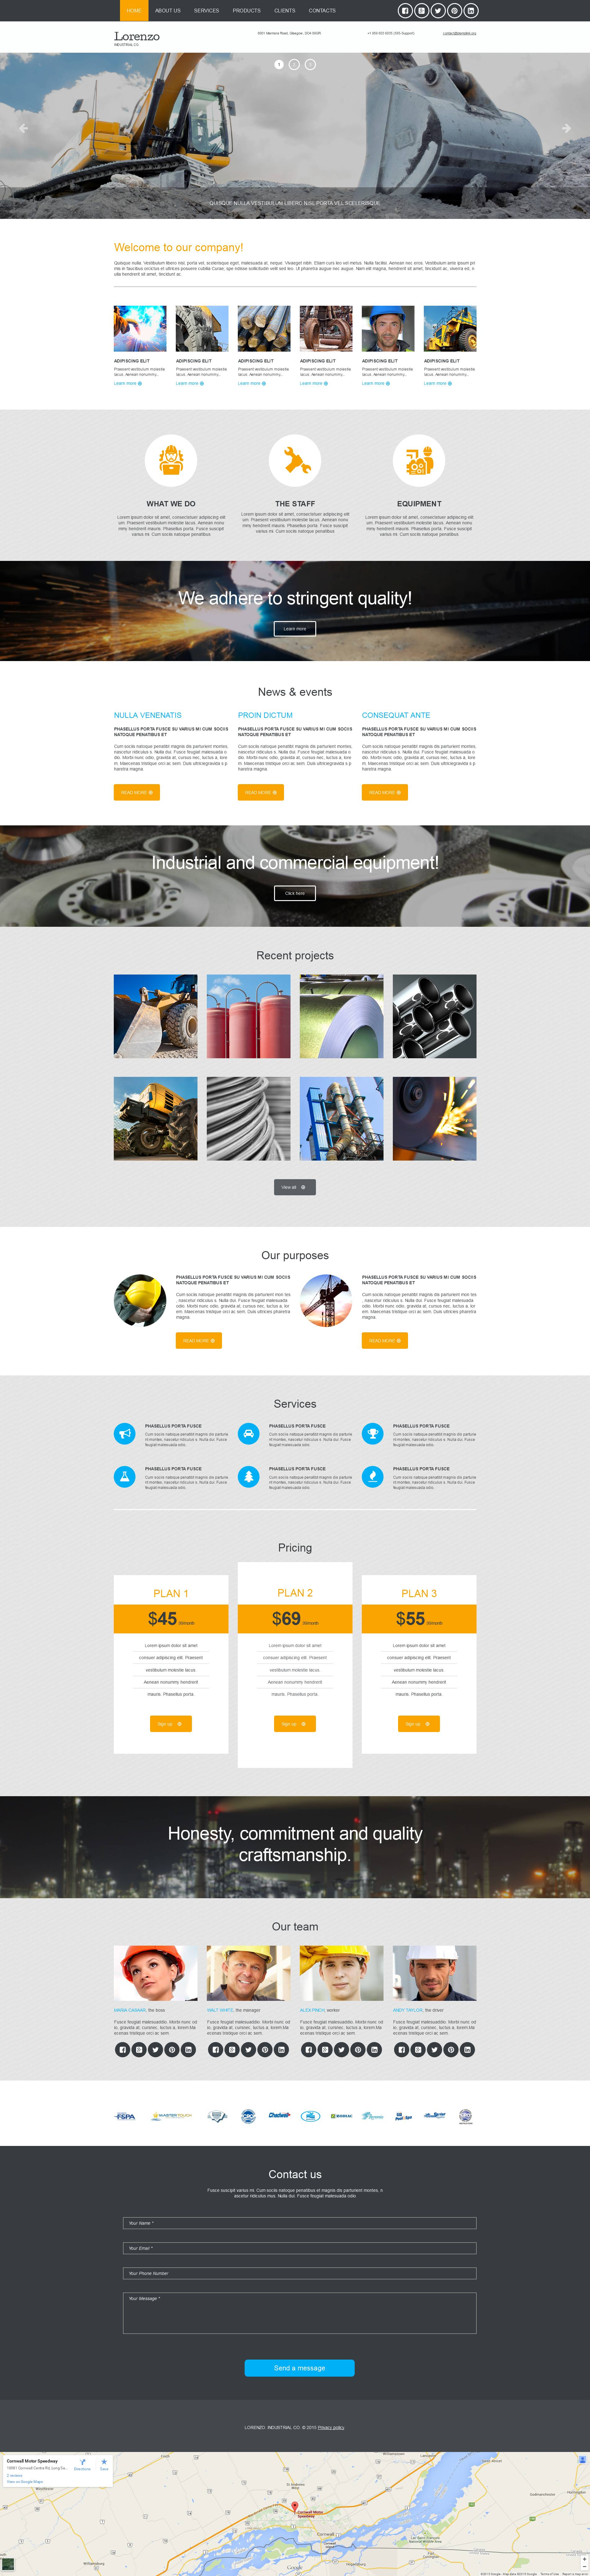 The Lorenzo Industrial Services Moto CMS 3 Templates Design 53238, one of the best Moto CMS 3 templates of its kind (industrial, most popular), also known as Lorenzo industrial services Moto CMS 3 template, products company Moto CMS 3 template, construction Moto CMS 3 template, business Moto CMS 3 template, architecture Moto CMS 3 template, buildings Moto CMS 3 template, technology Moto CMS 3 template, engines Moto CMS 3 template, innovation Moto CMS 3 template, skyscrapers Moto CMS 3 template, projects Moto CMS 3 template, constructions Moto CMS 3 template, houses Moto CMS 3 template, work Moto CMS 3 template, team Moto CMS 3 template, strategy Moto CMS 3 template, services Moto CMS 3 template, support Moto CMS 3 template, planning solutions Moto CMS 3 template, non-standard Moto CMS 3 template, creative ideas Moto CMS 3 template, catalog Moto CMS 3 template, windows Moto CMS 3 template, doors and related with Lorenzo industrial services, products company, construction, business, architecture, buildings, technology, engines, innovation, skyscrapers, projects, constructions, houses, work, team, strategy, services, support, planning solutions, non-standard, creative ideas, catalog, windows, doors, etc.